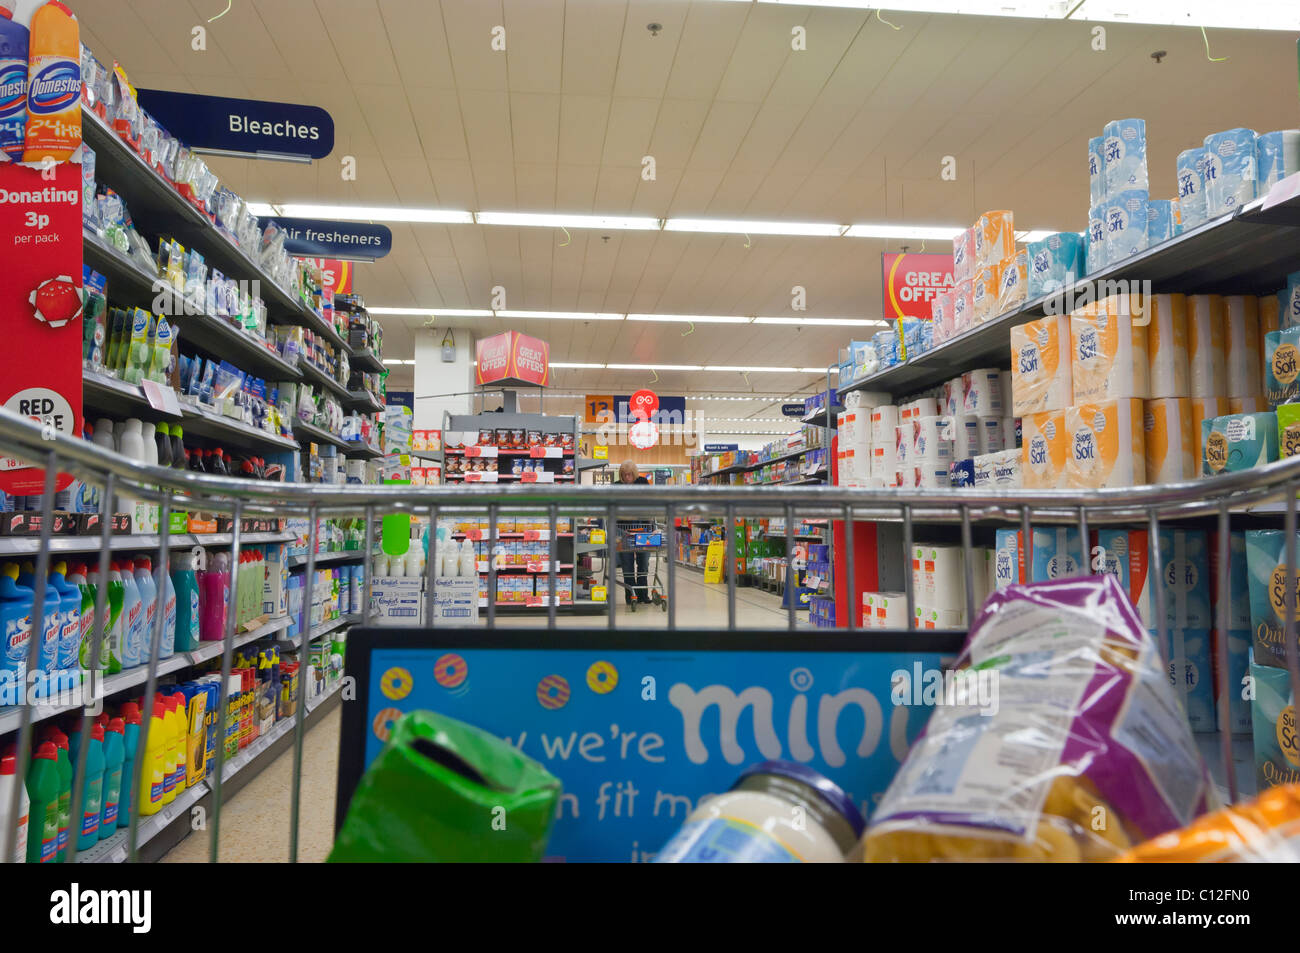 Shopping in Sainsbury's supermarket with camera in the trolley in the Uk - Stock Image